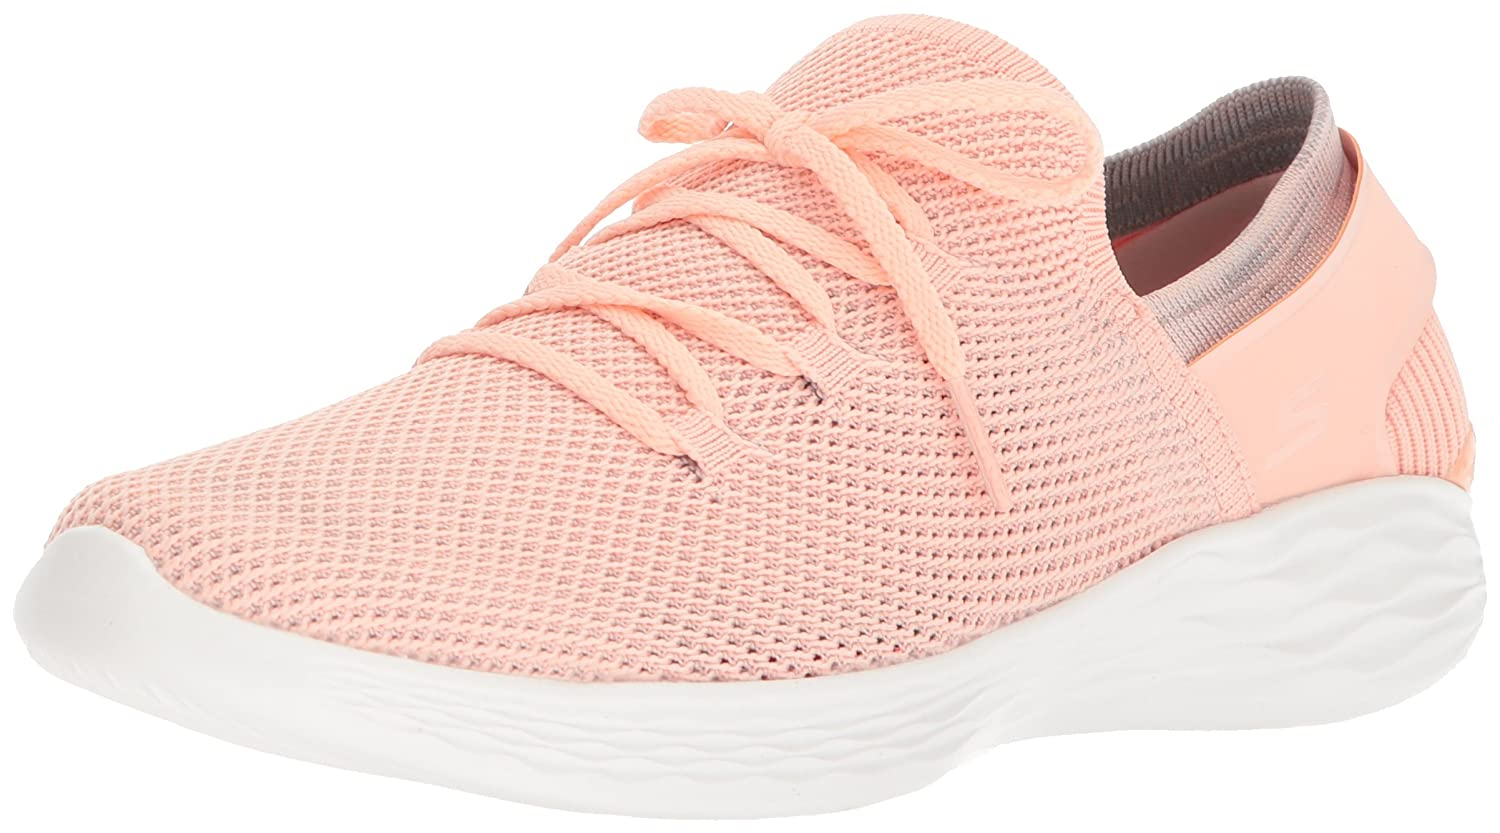 Skechers Women's You-14960 Sneaker B072MSD54J 8.5 B(M) US|Peach